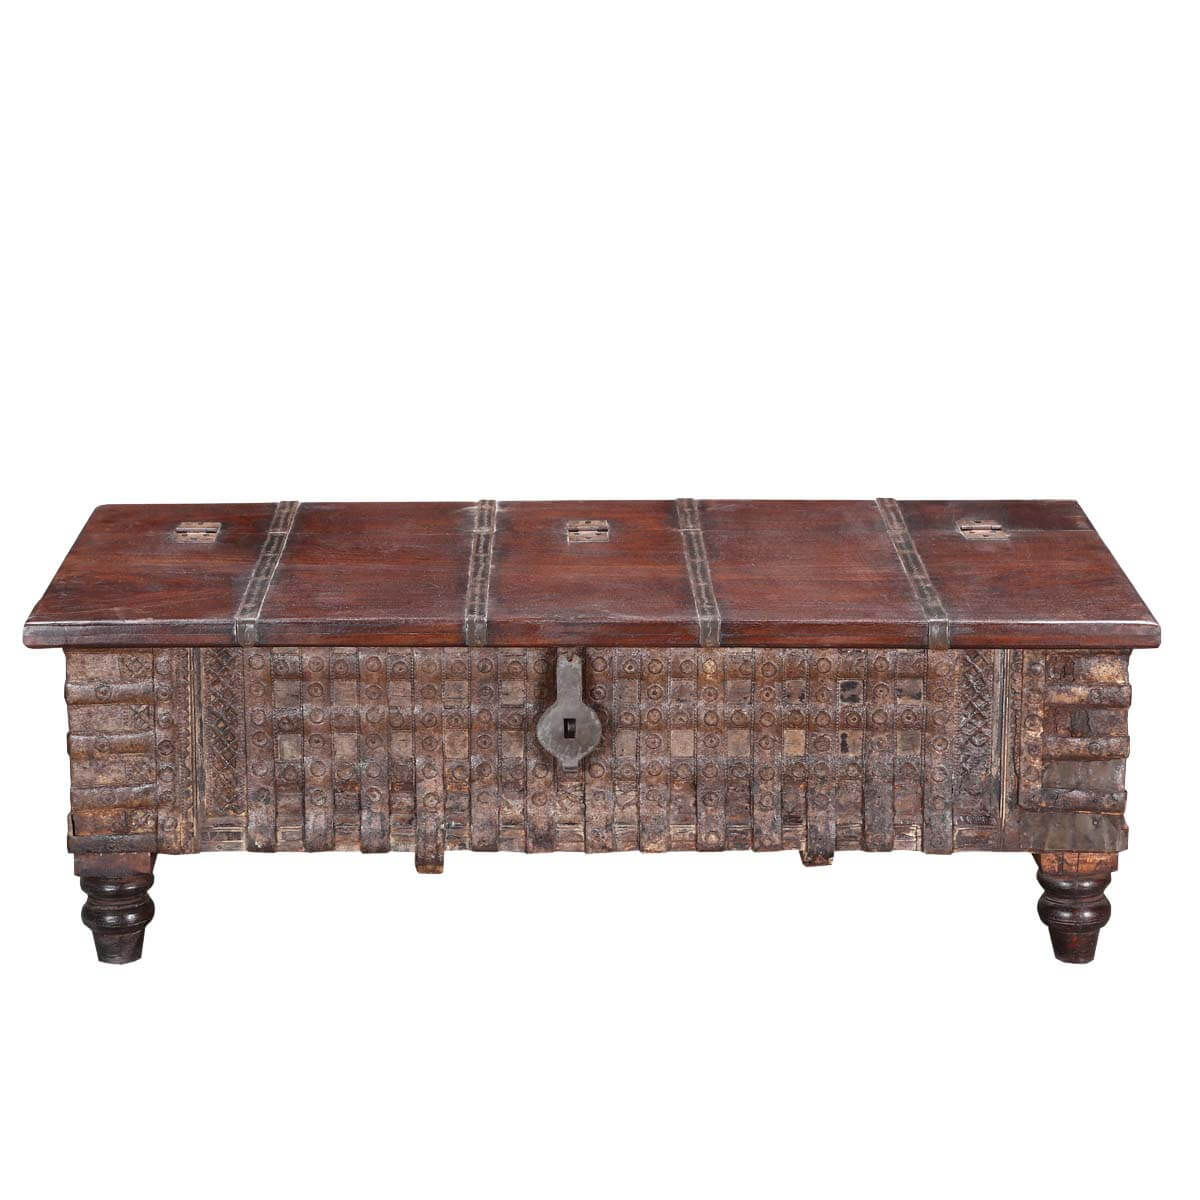 Tudor Rustic Reclaimed Wood 52 Standing Coffee Table Chest